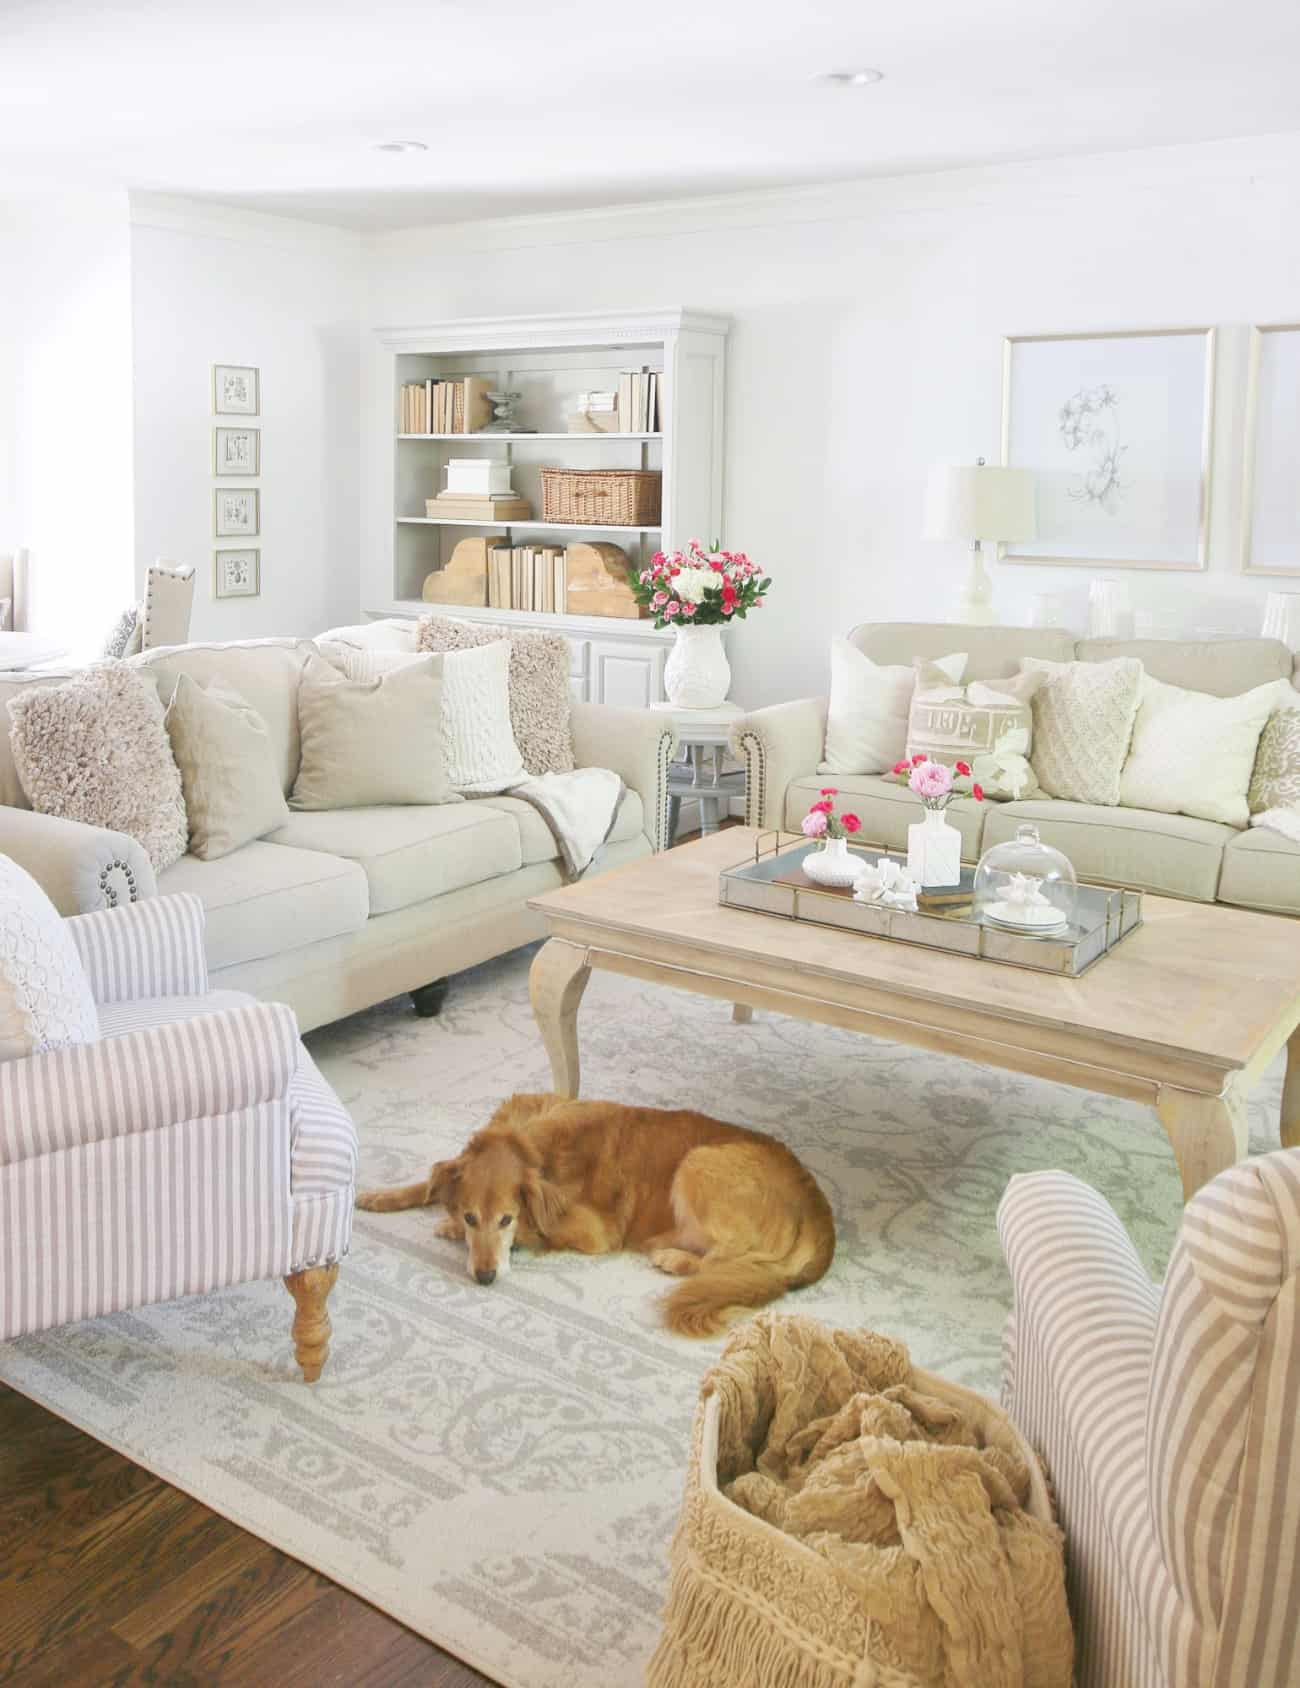 khaki couches and flowers and summer decorating ideas for the living room